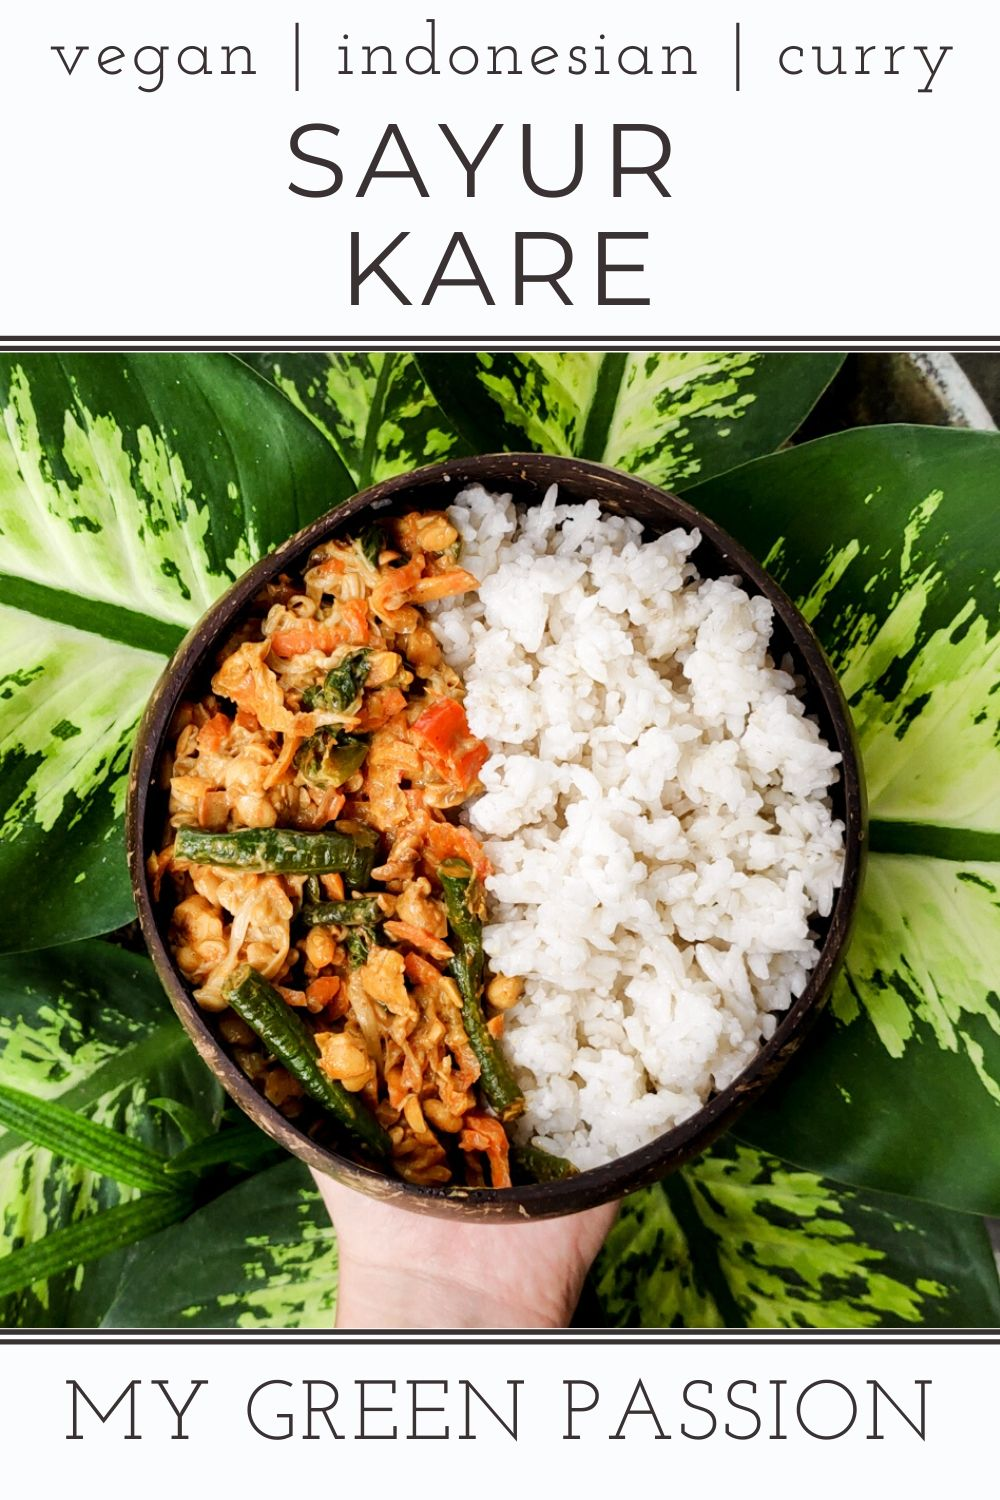 sayur kare vegan indonesian vegetable curry plant-based easy quick gluten-free